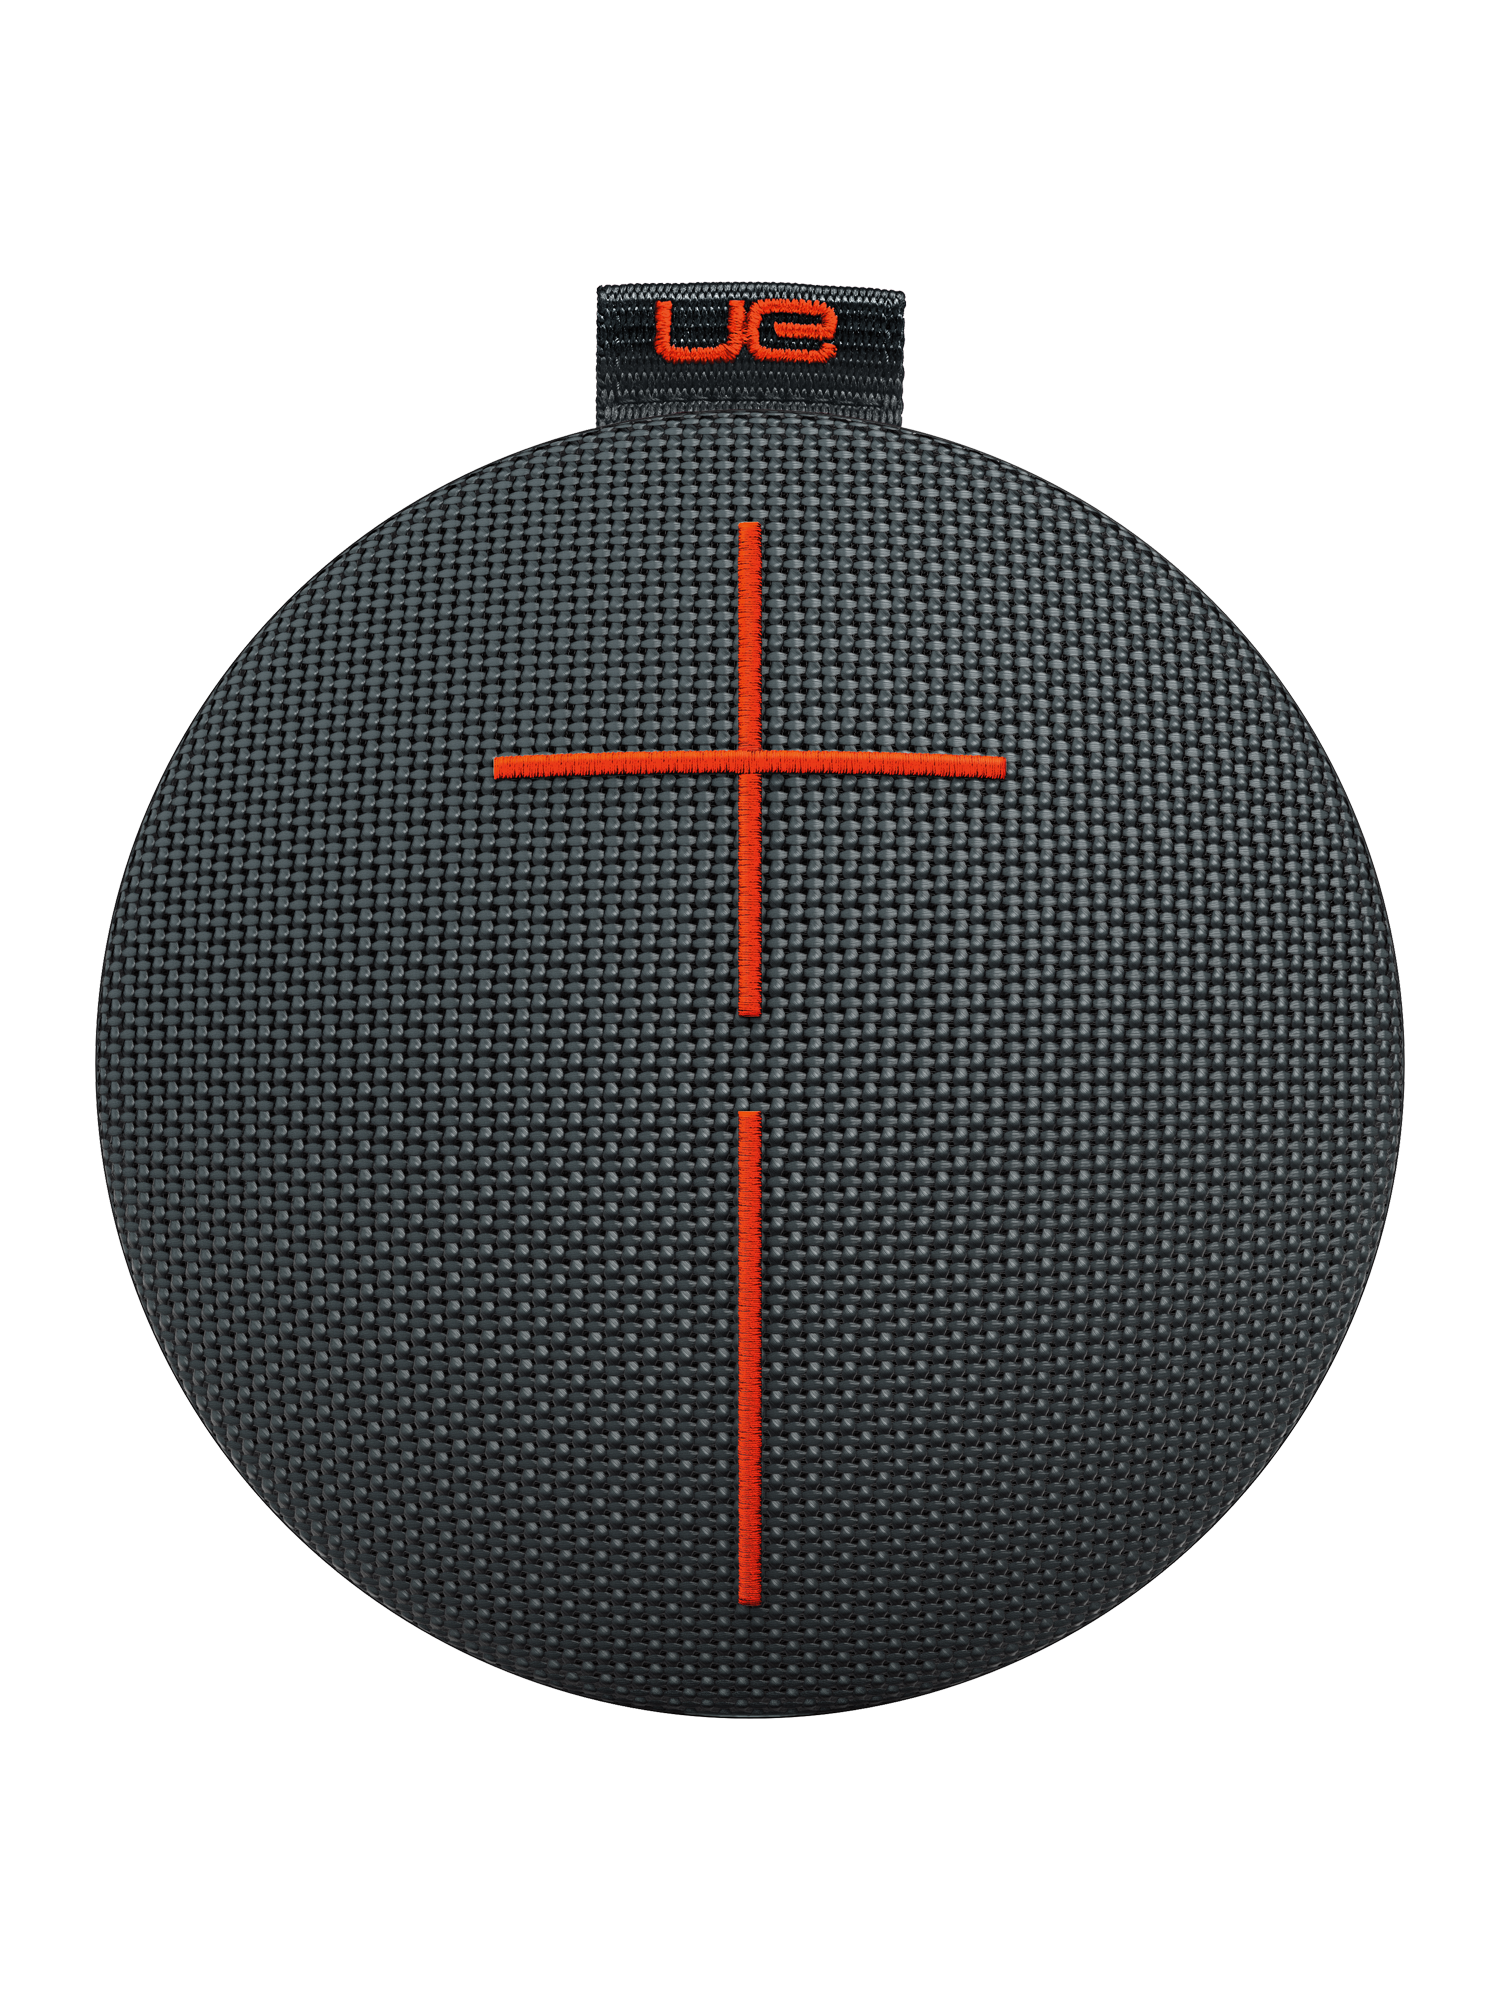 Ultimate Ears ROLL 9 Small Portable Bluetooth Speaker